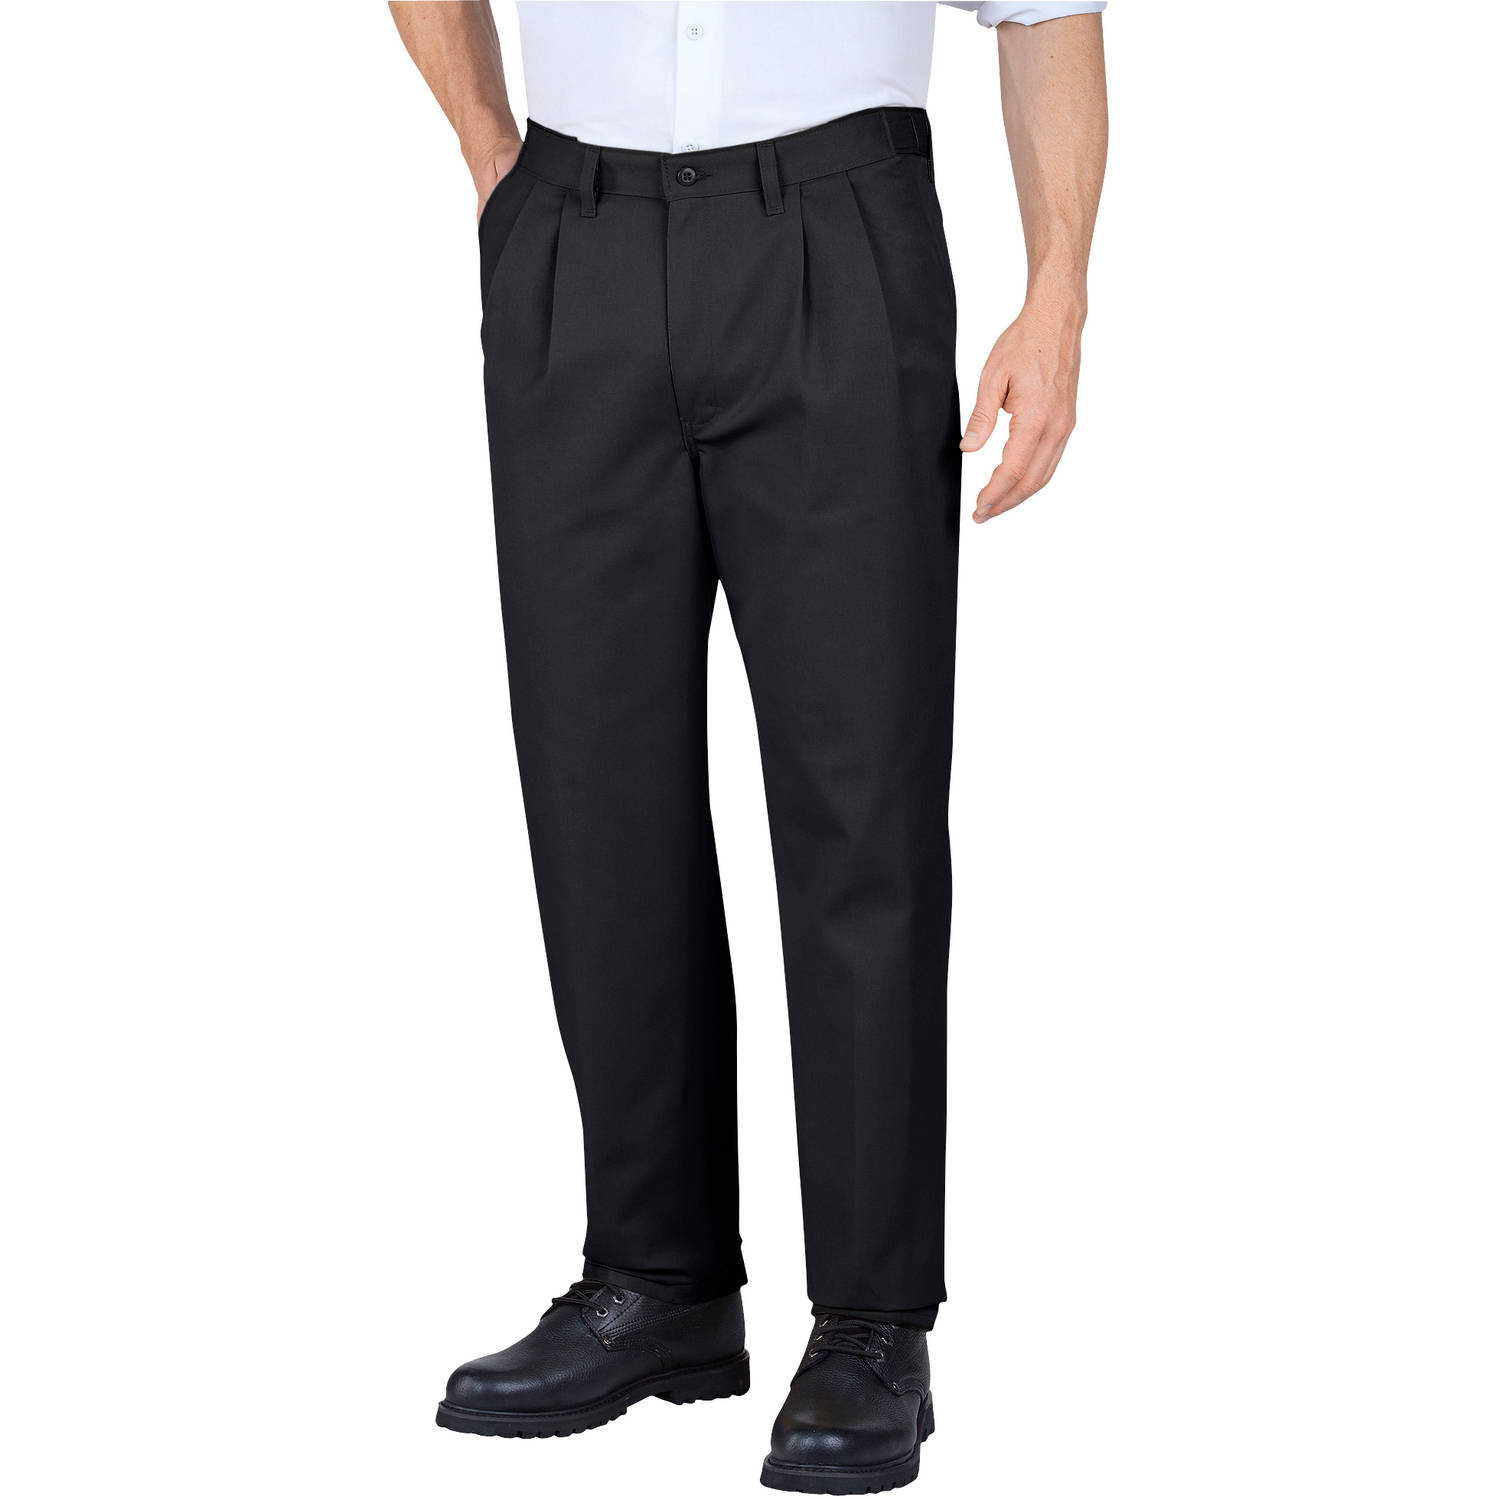 Genuine Dickies Men's Pleated Comfort-Waist Work Pants - Walmart.com